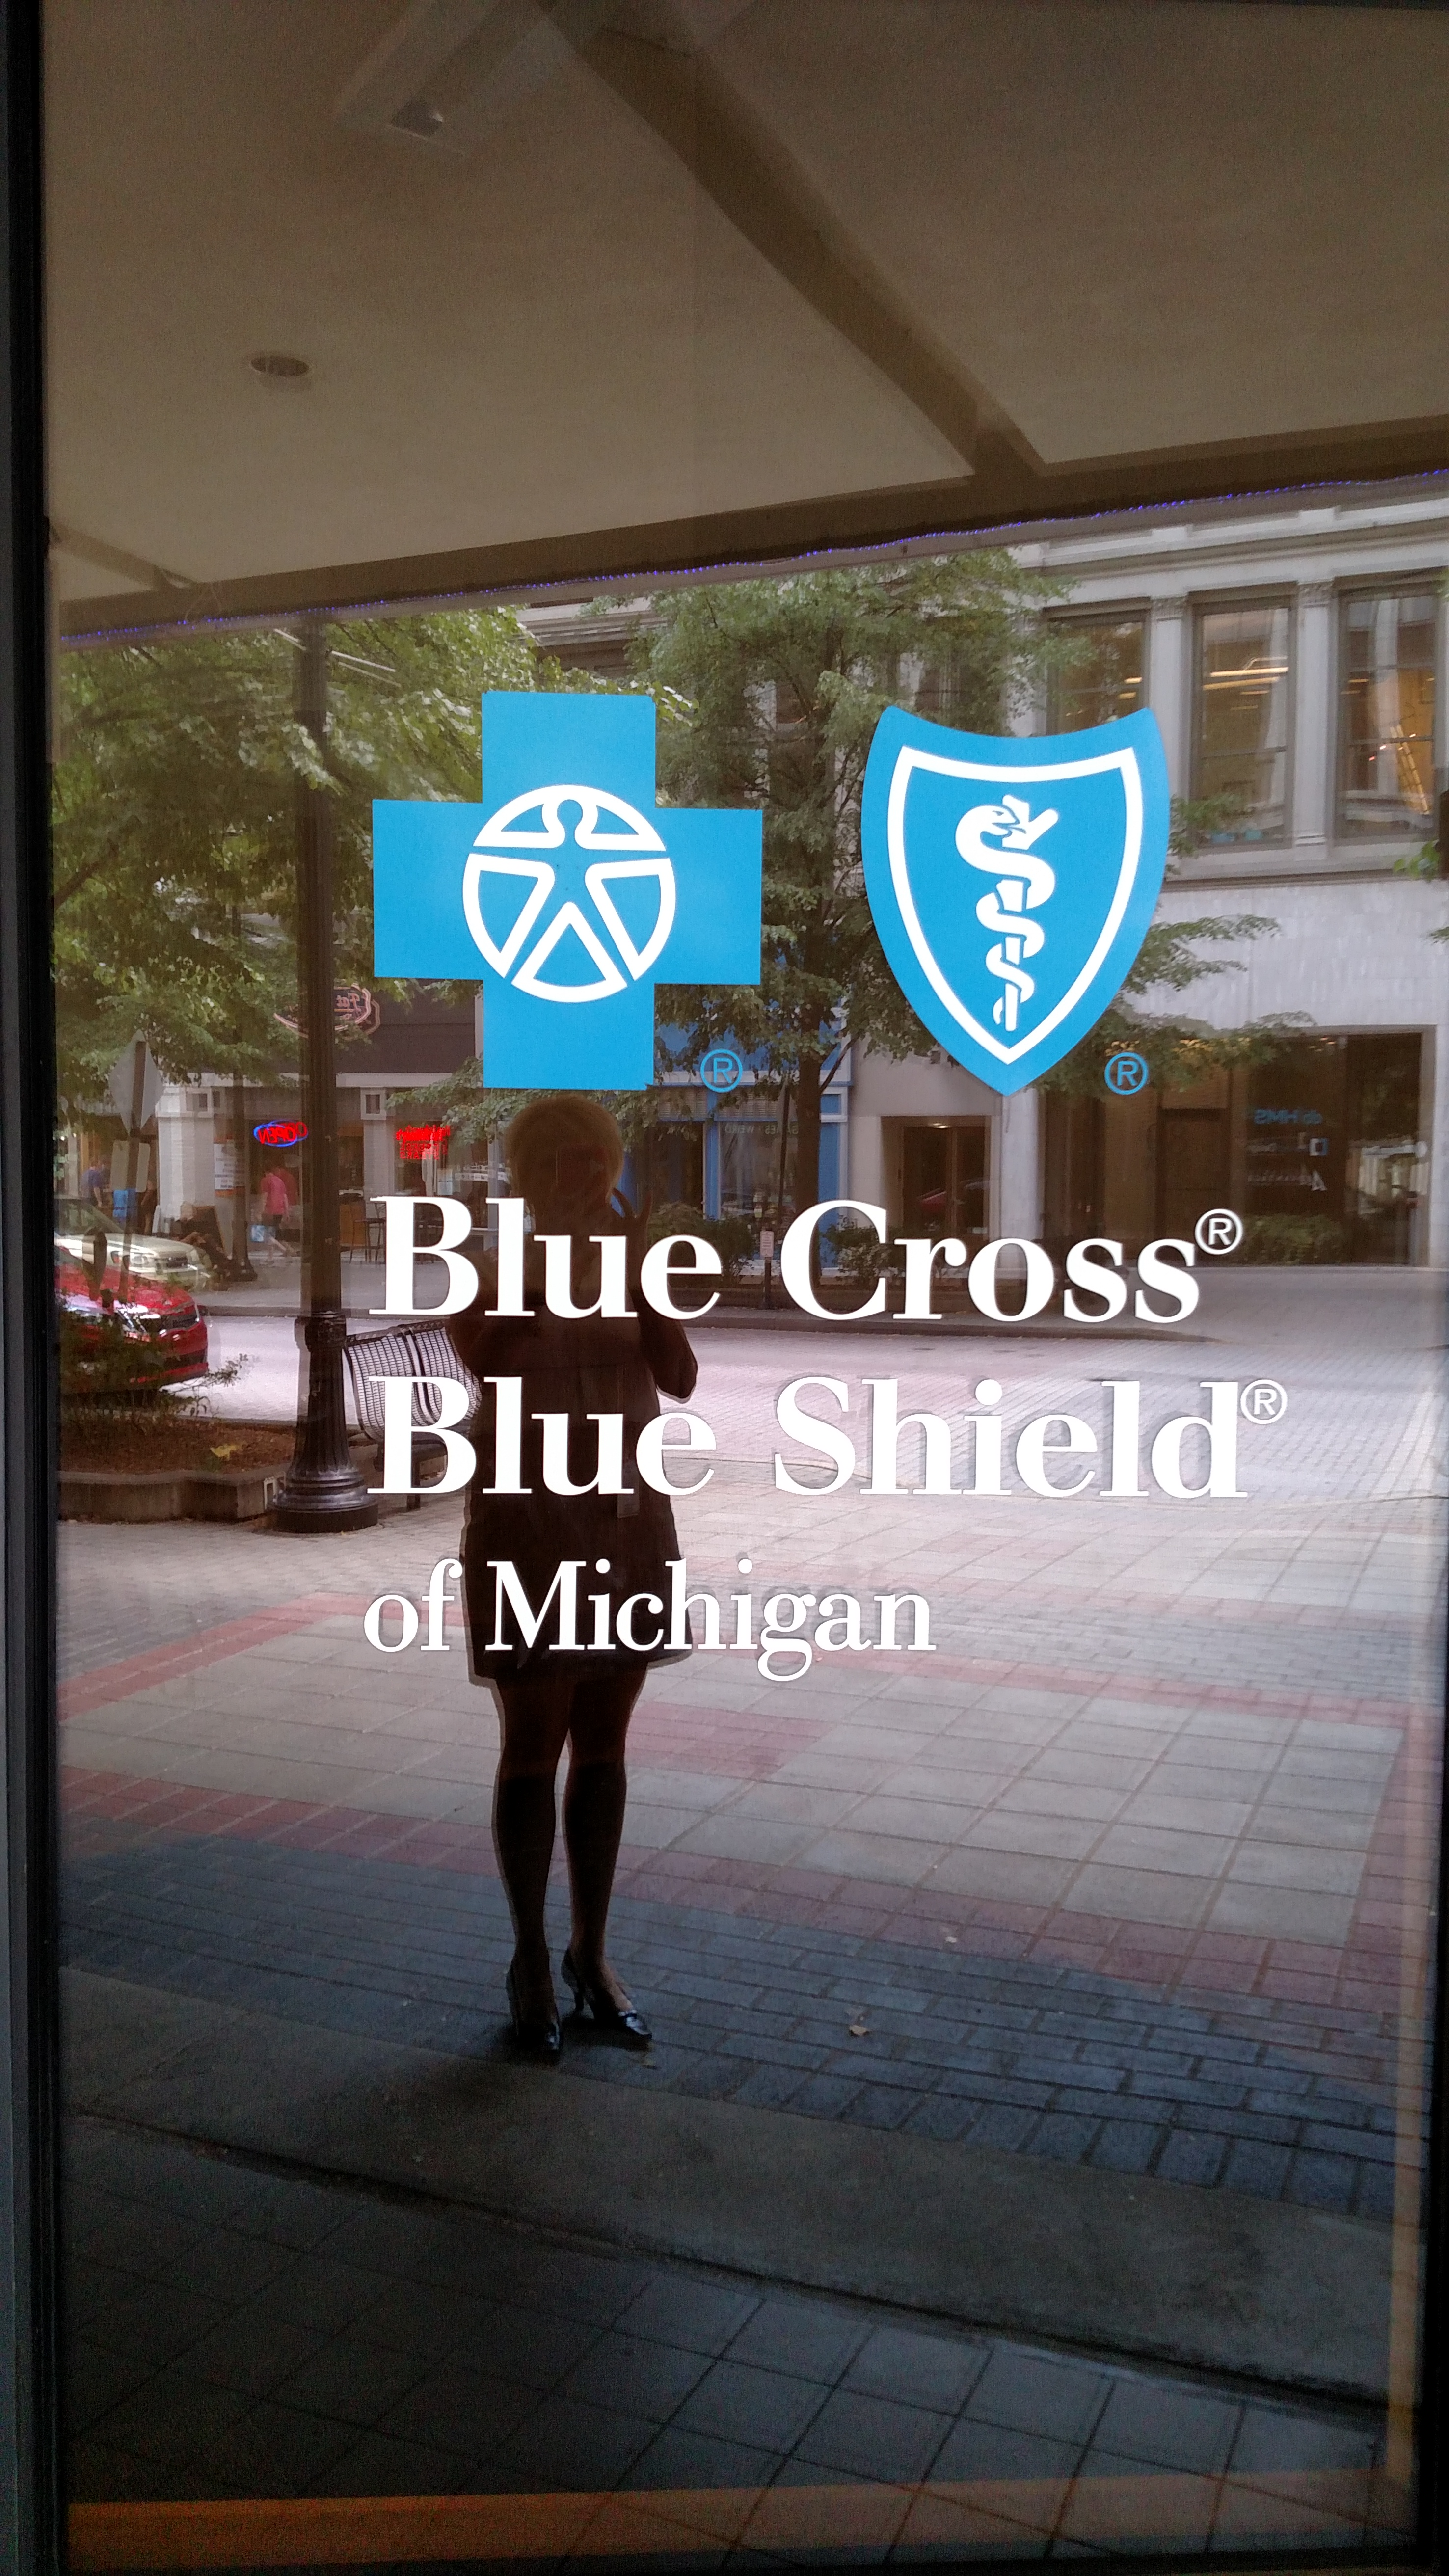 A photo of Blue Cross Blue Shield of Michigan